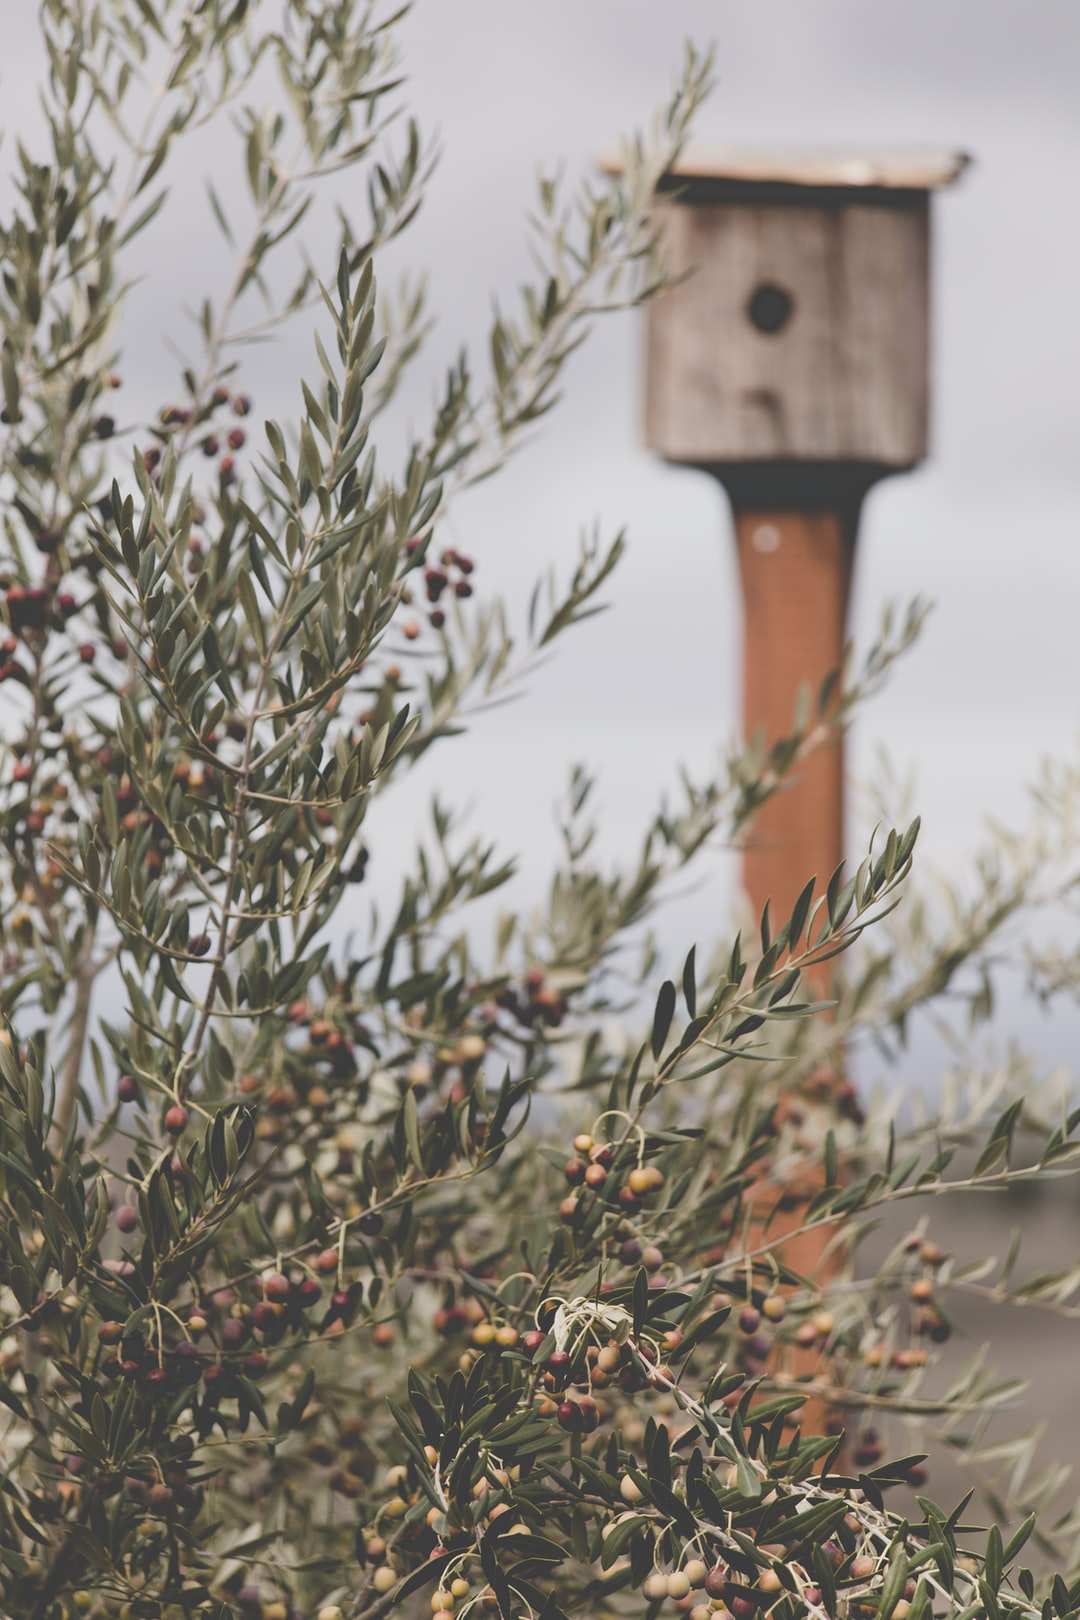 Olive tree covered in olives with a rustic birdhouse in the background.